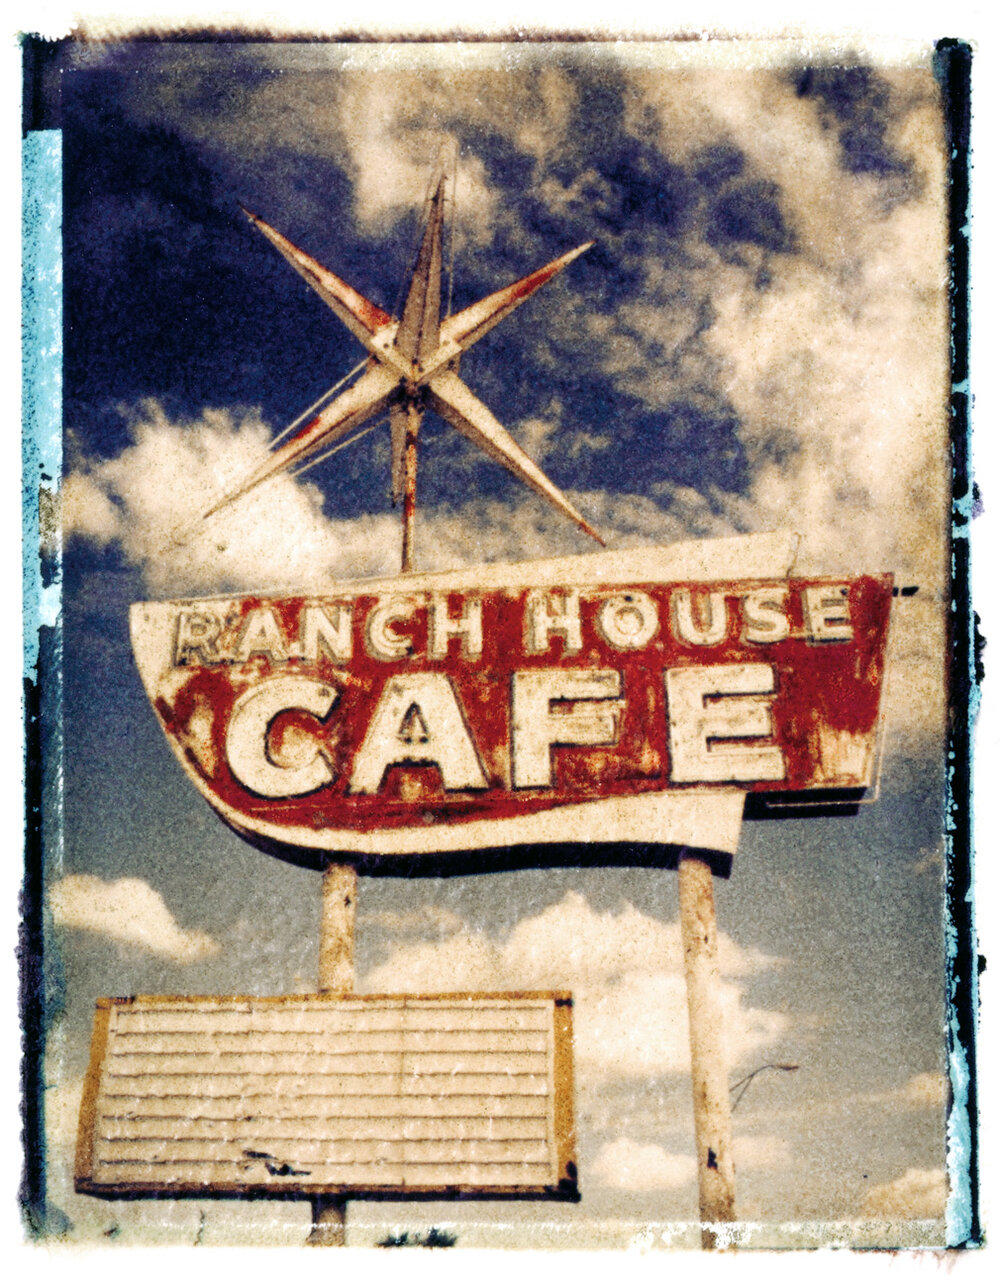 Ranch House Cafe, photographed in Vaughn, New Mexico